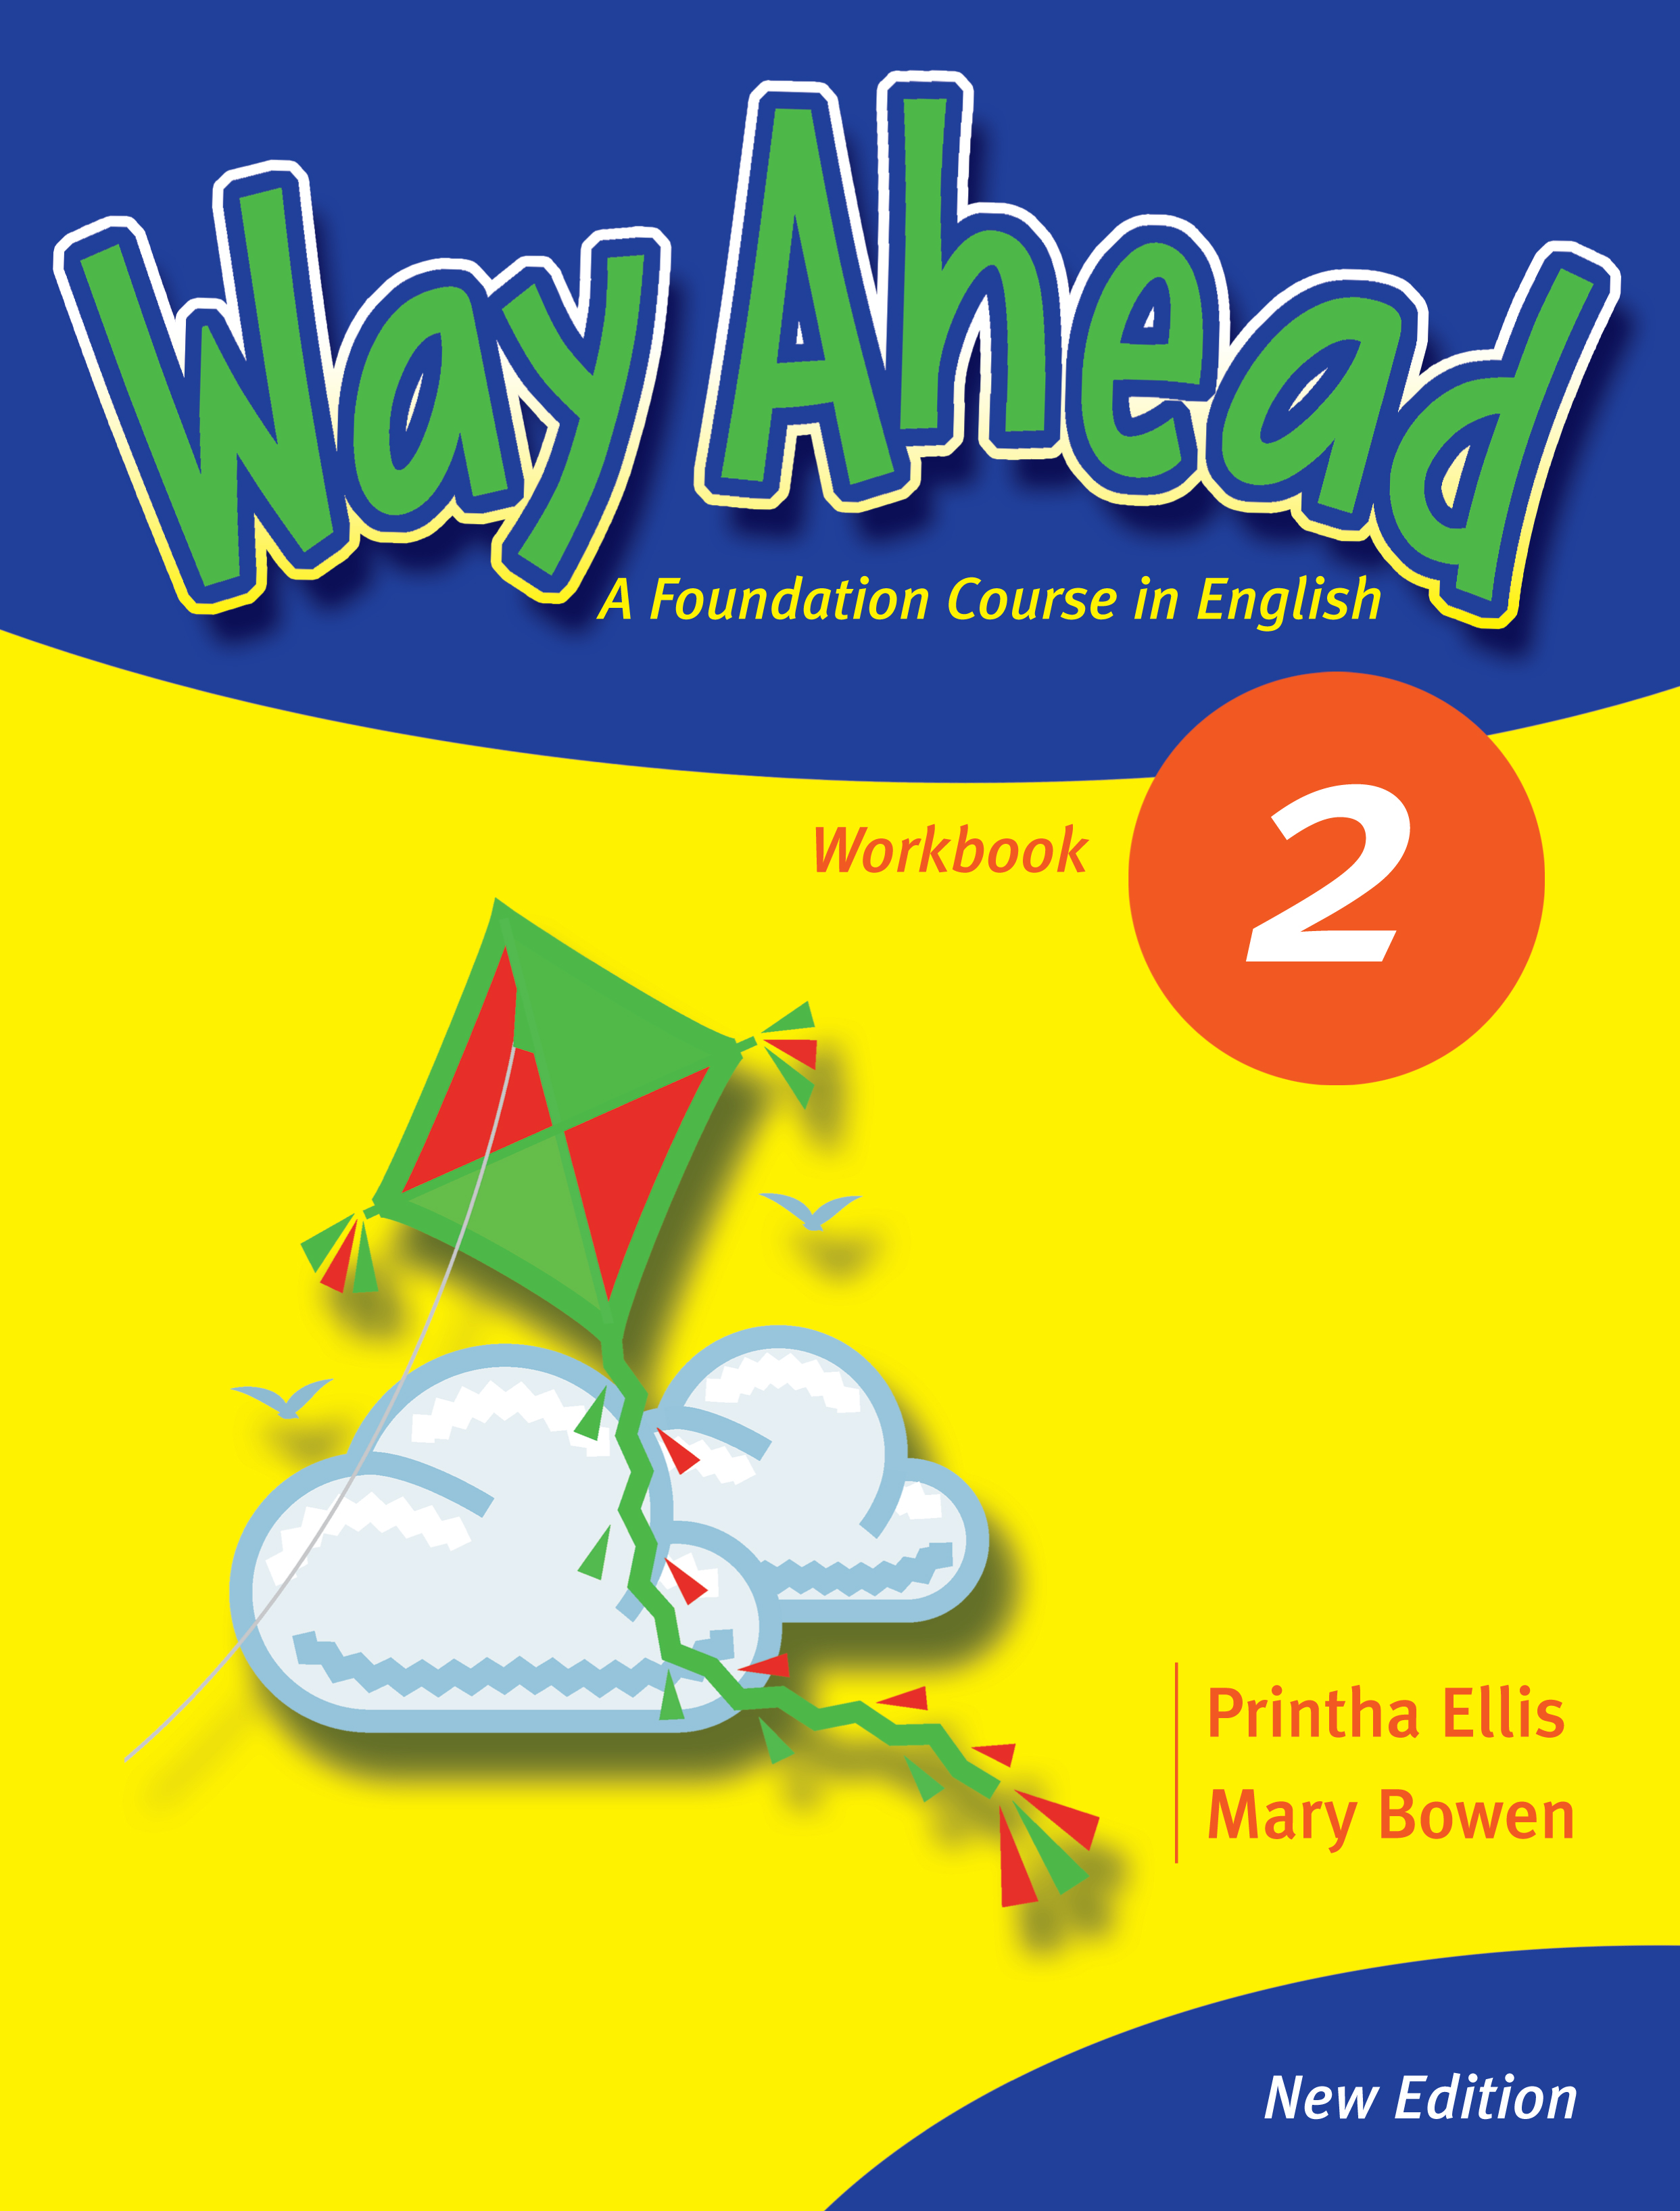 Way Ahead 2 Workbook